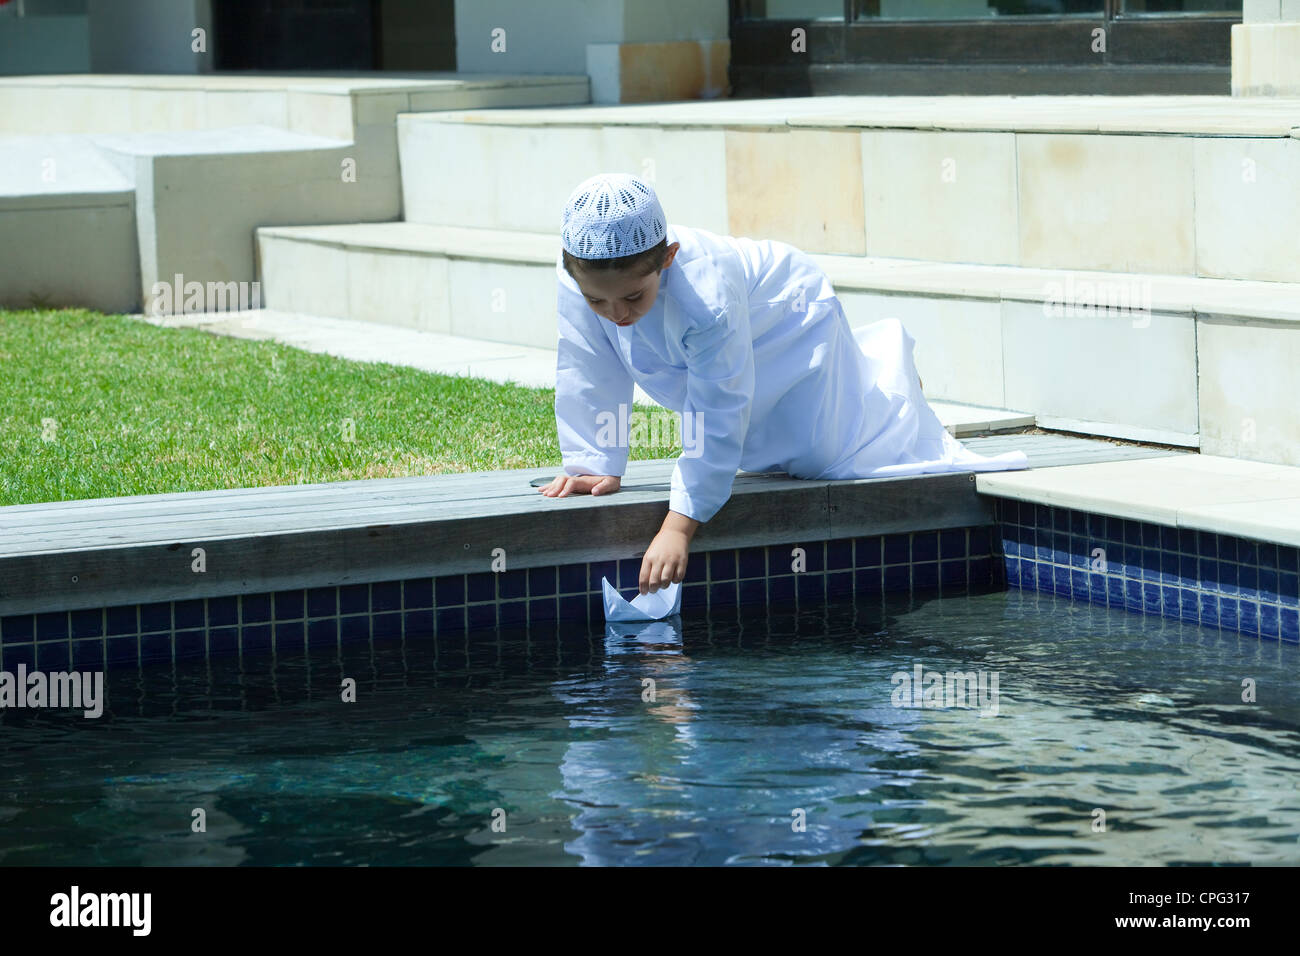 Arab boy playing paper boat by swimming pool. - Stock Image